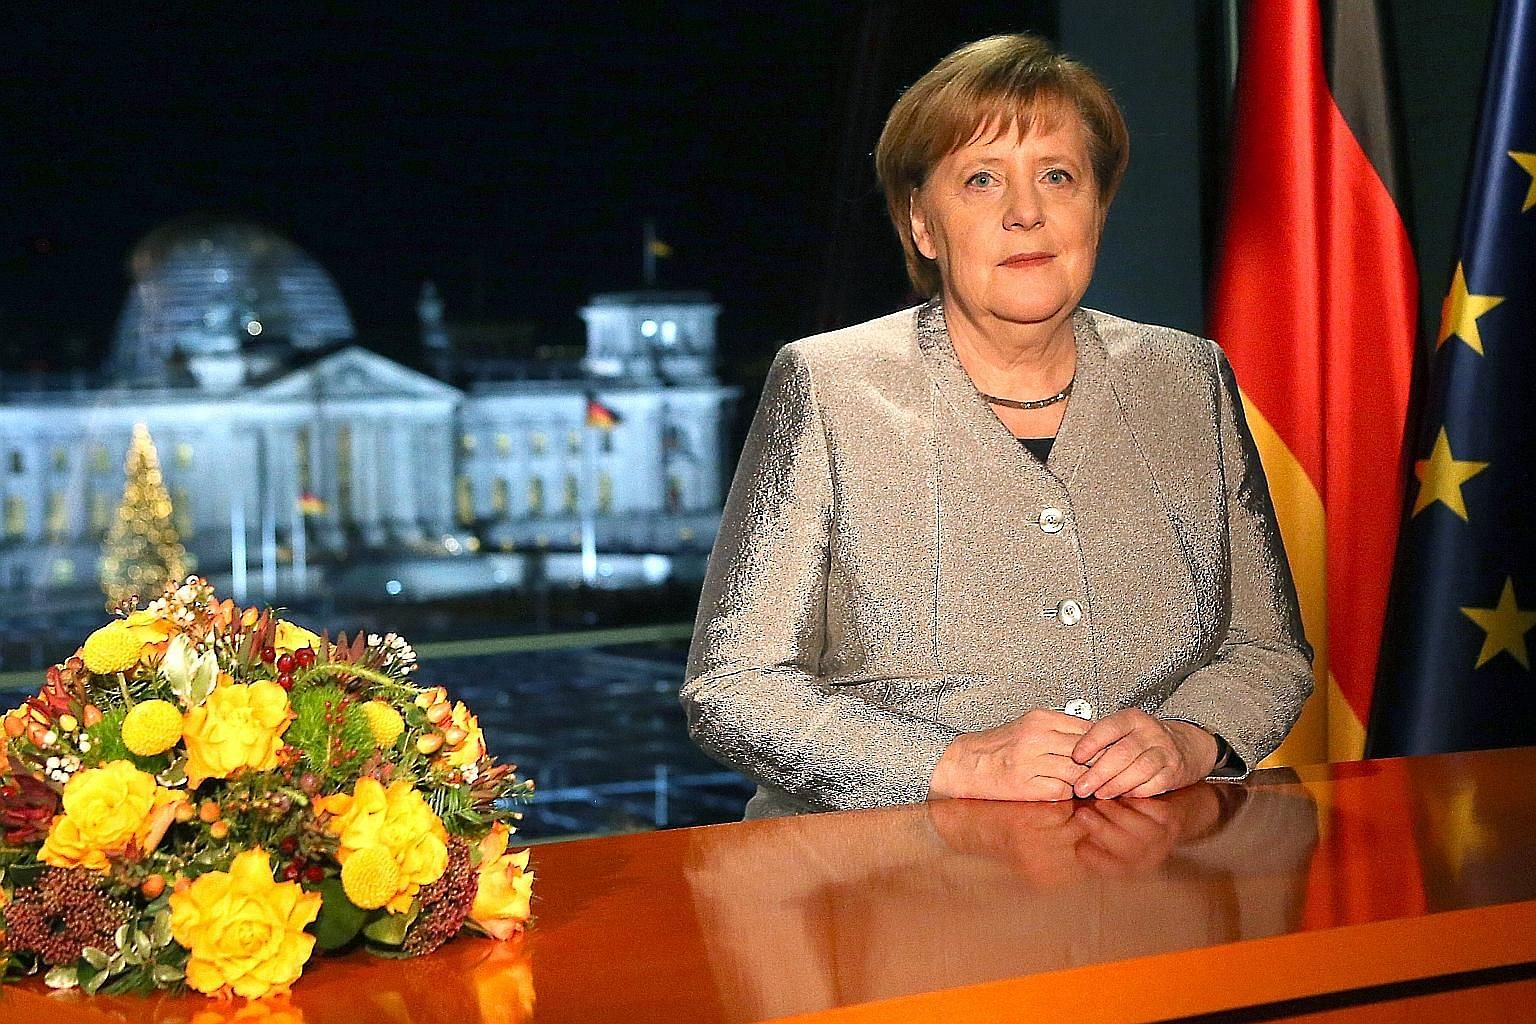 German Chancellor Angela Merkel, in her New Year address to the nation, said Germany must assume greater responsibilities at a time when multilateralism is coming under intense pressure.